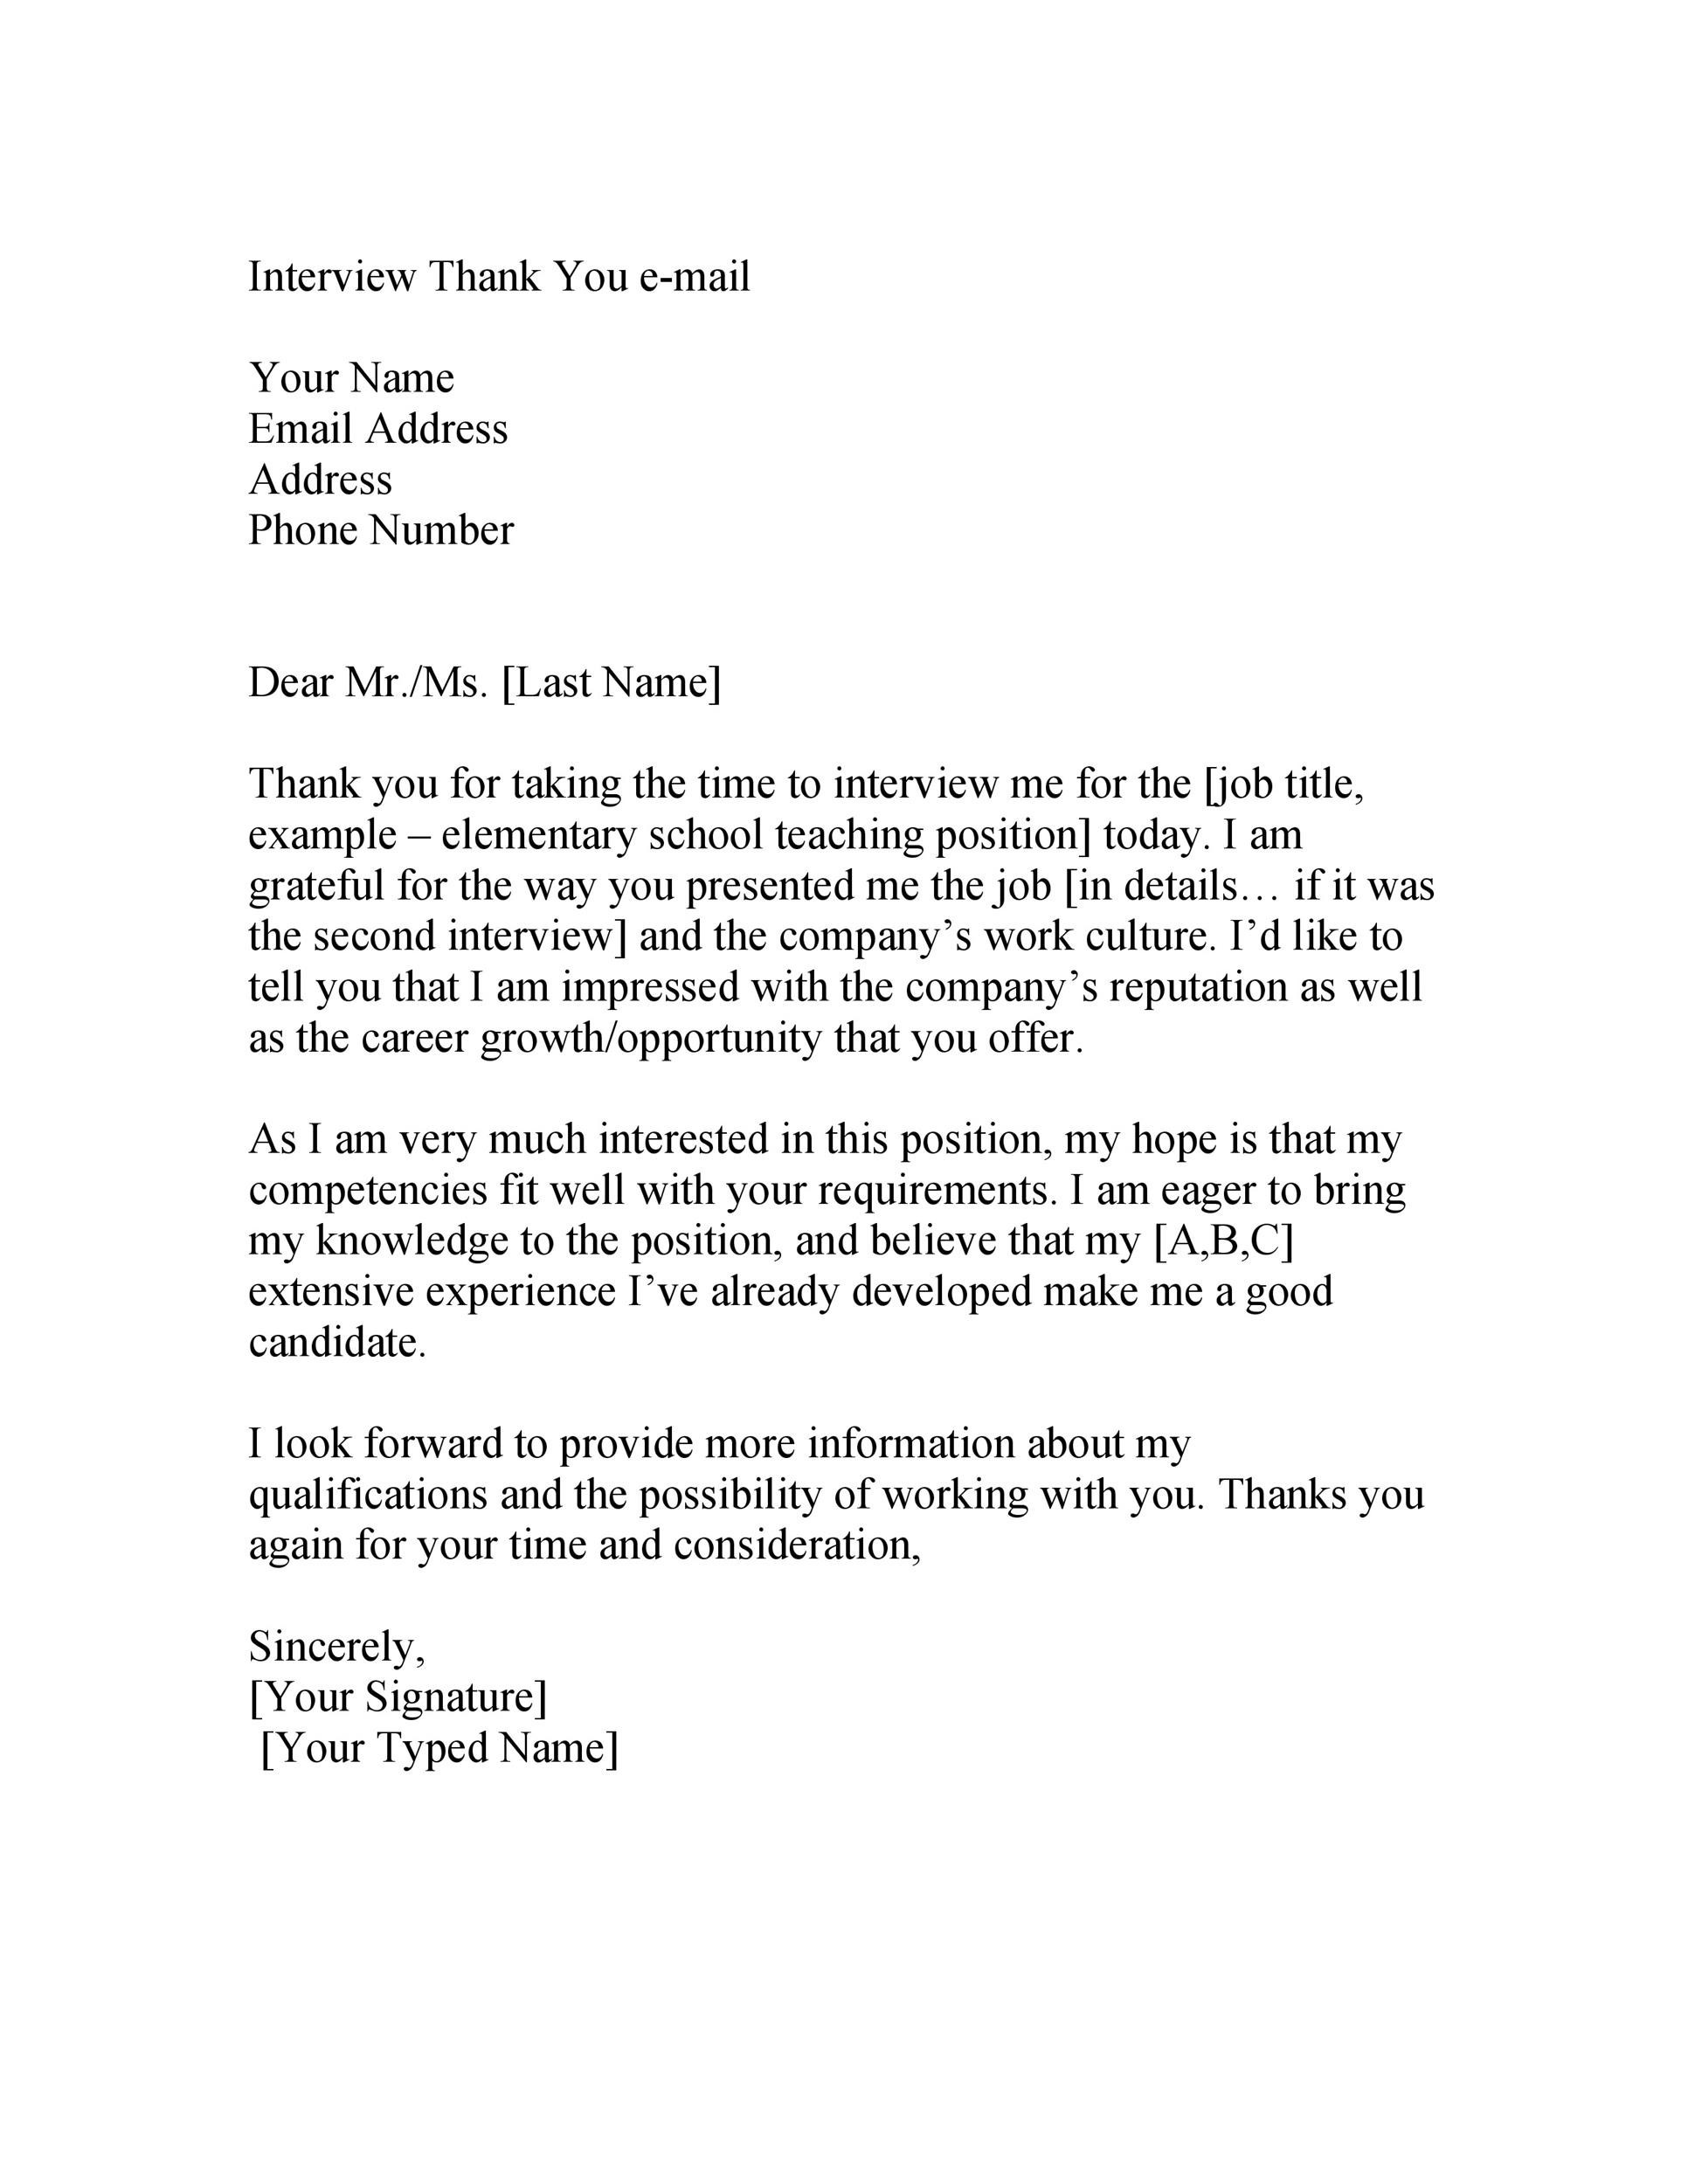 40 Thank You Email After Interview Templates ᐅ Template Lab